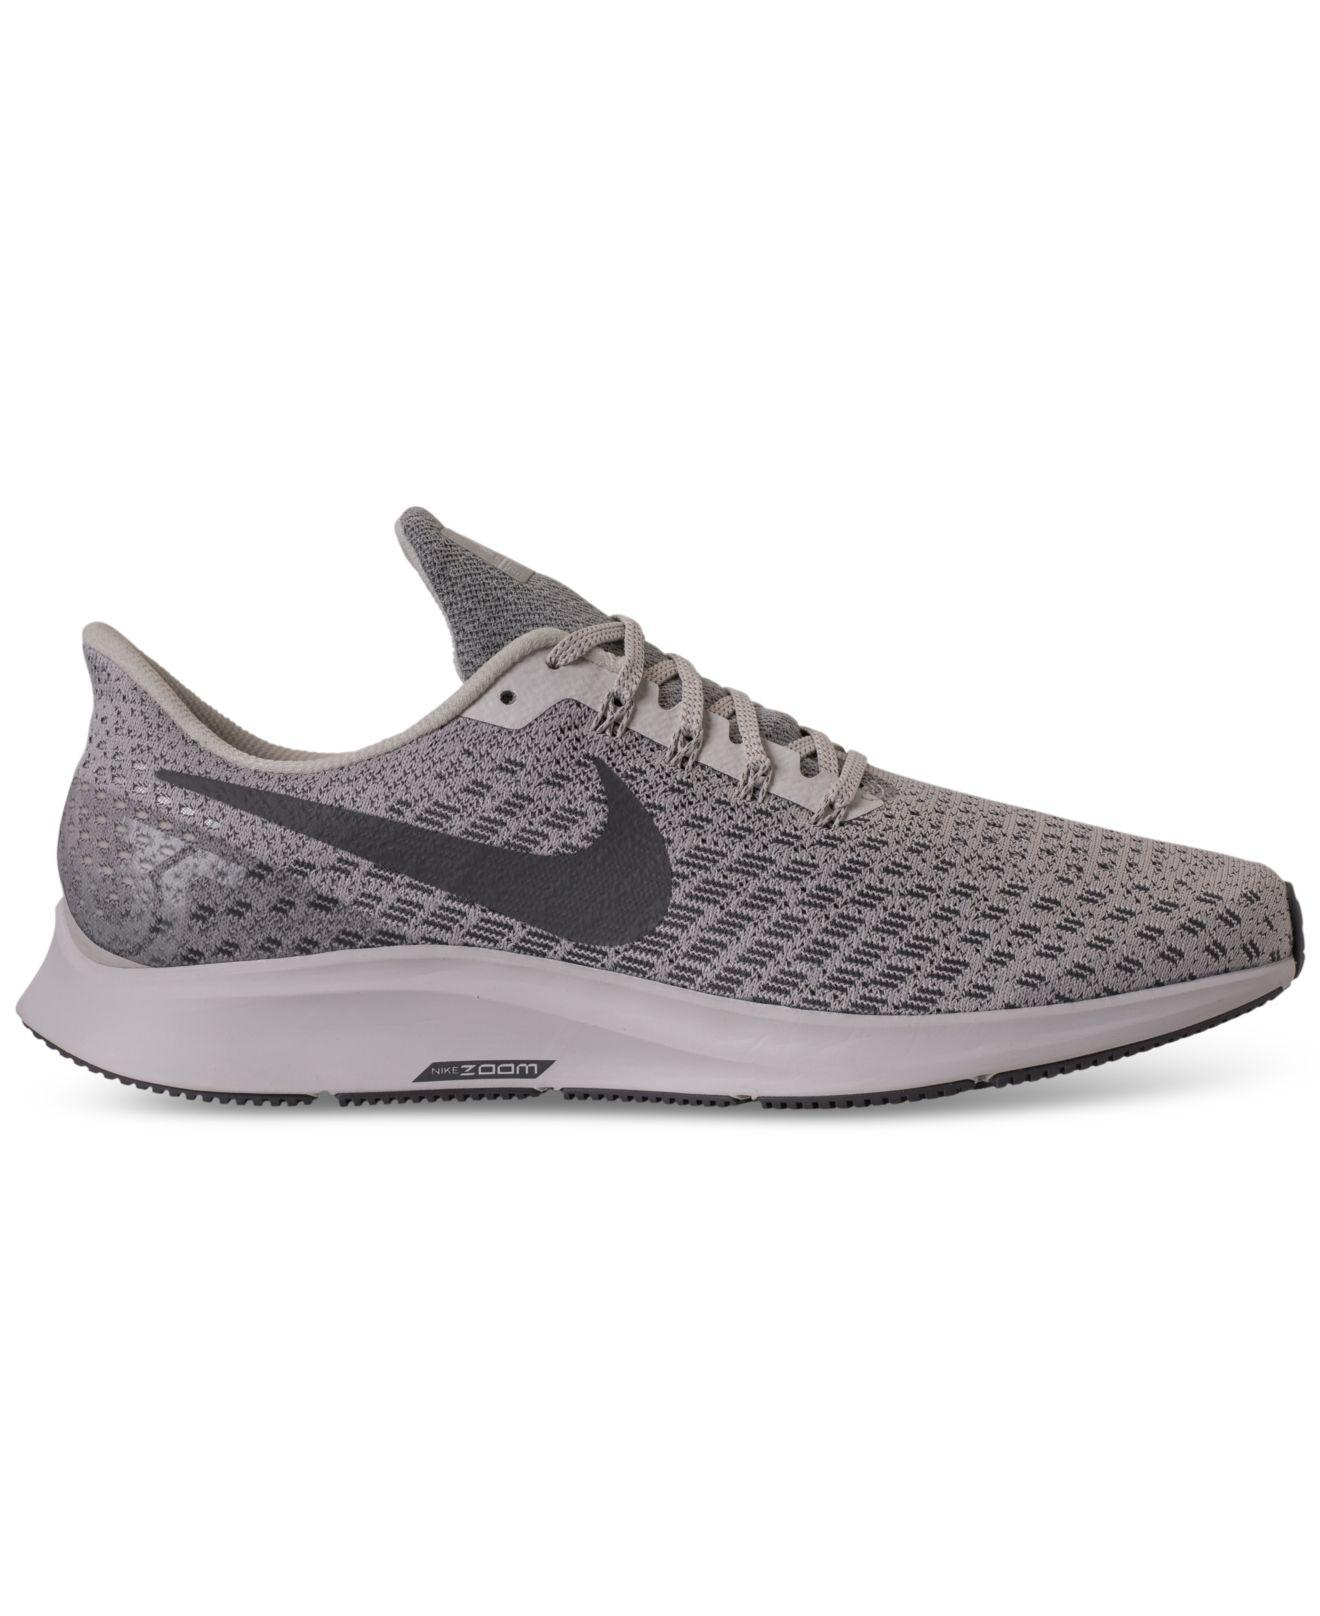 Lyst - Nike Air Zoom Pegasus 35 Running Sneakers From Finish Line in Gray  for Men 1a9fe5b35